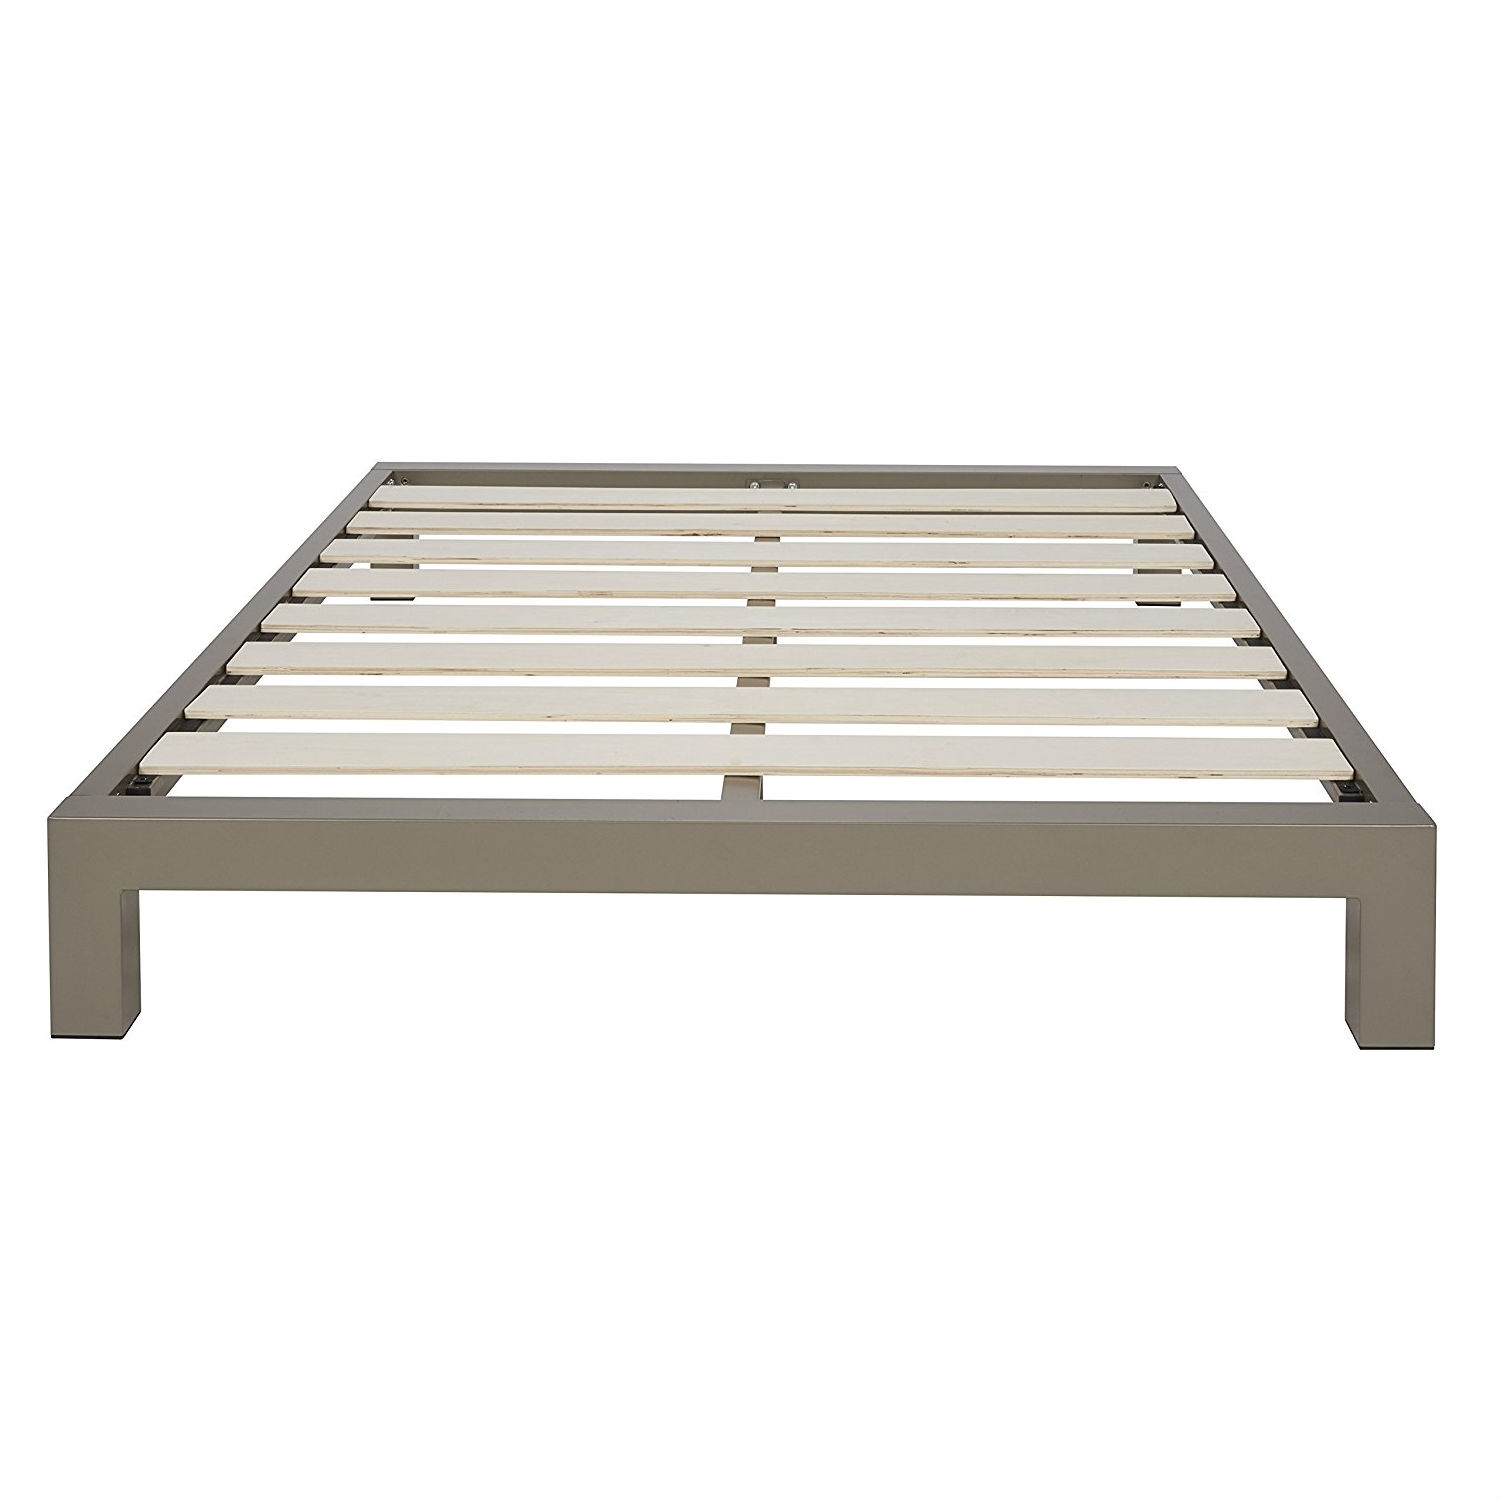 Image of: Queen Size Champagne Metal Platform Bed Frame With Wood Slats Fastfurnishings Com